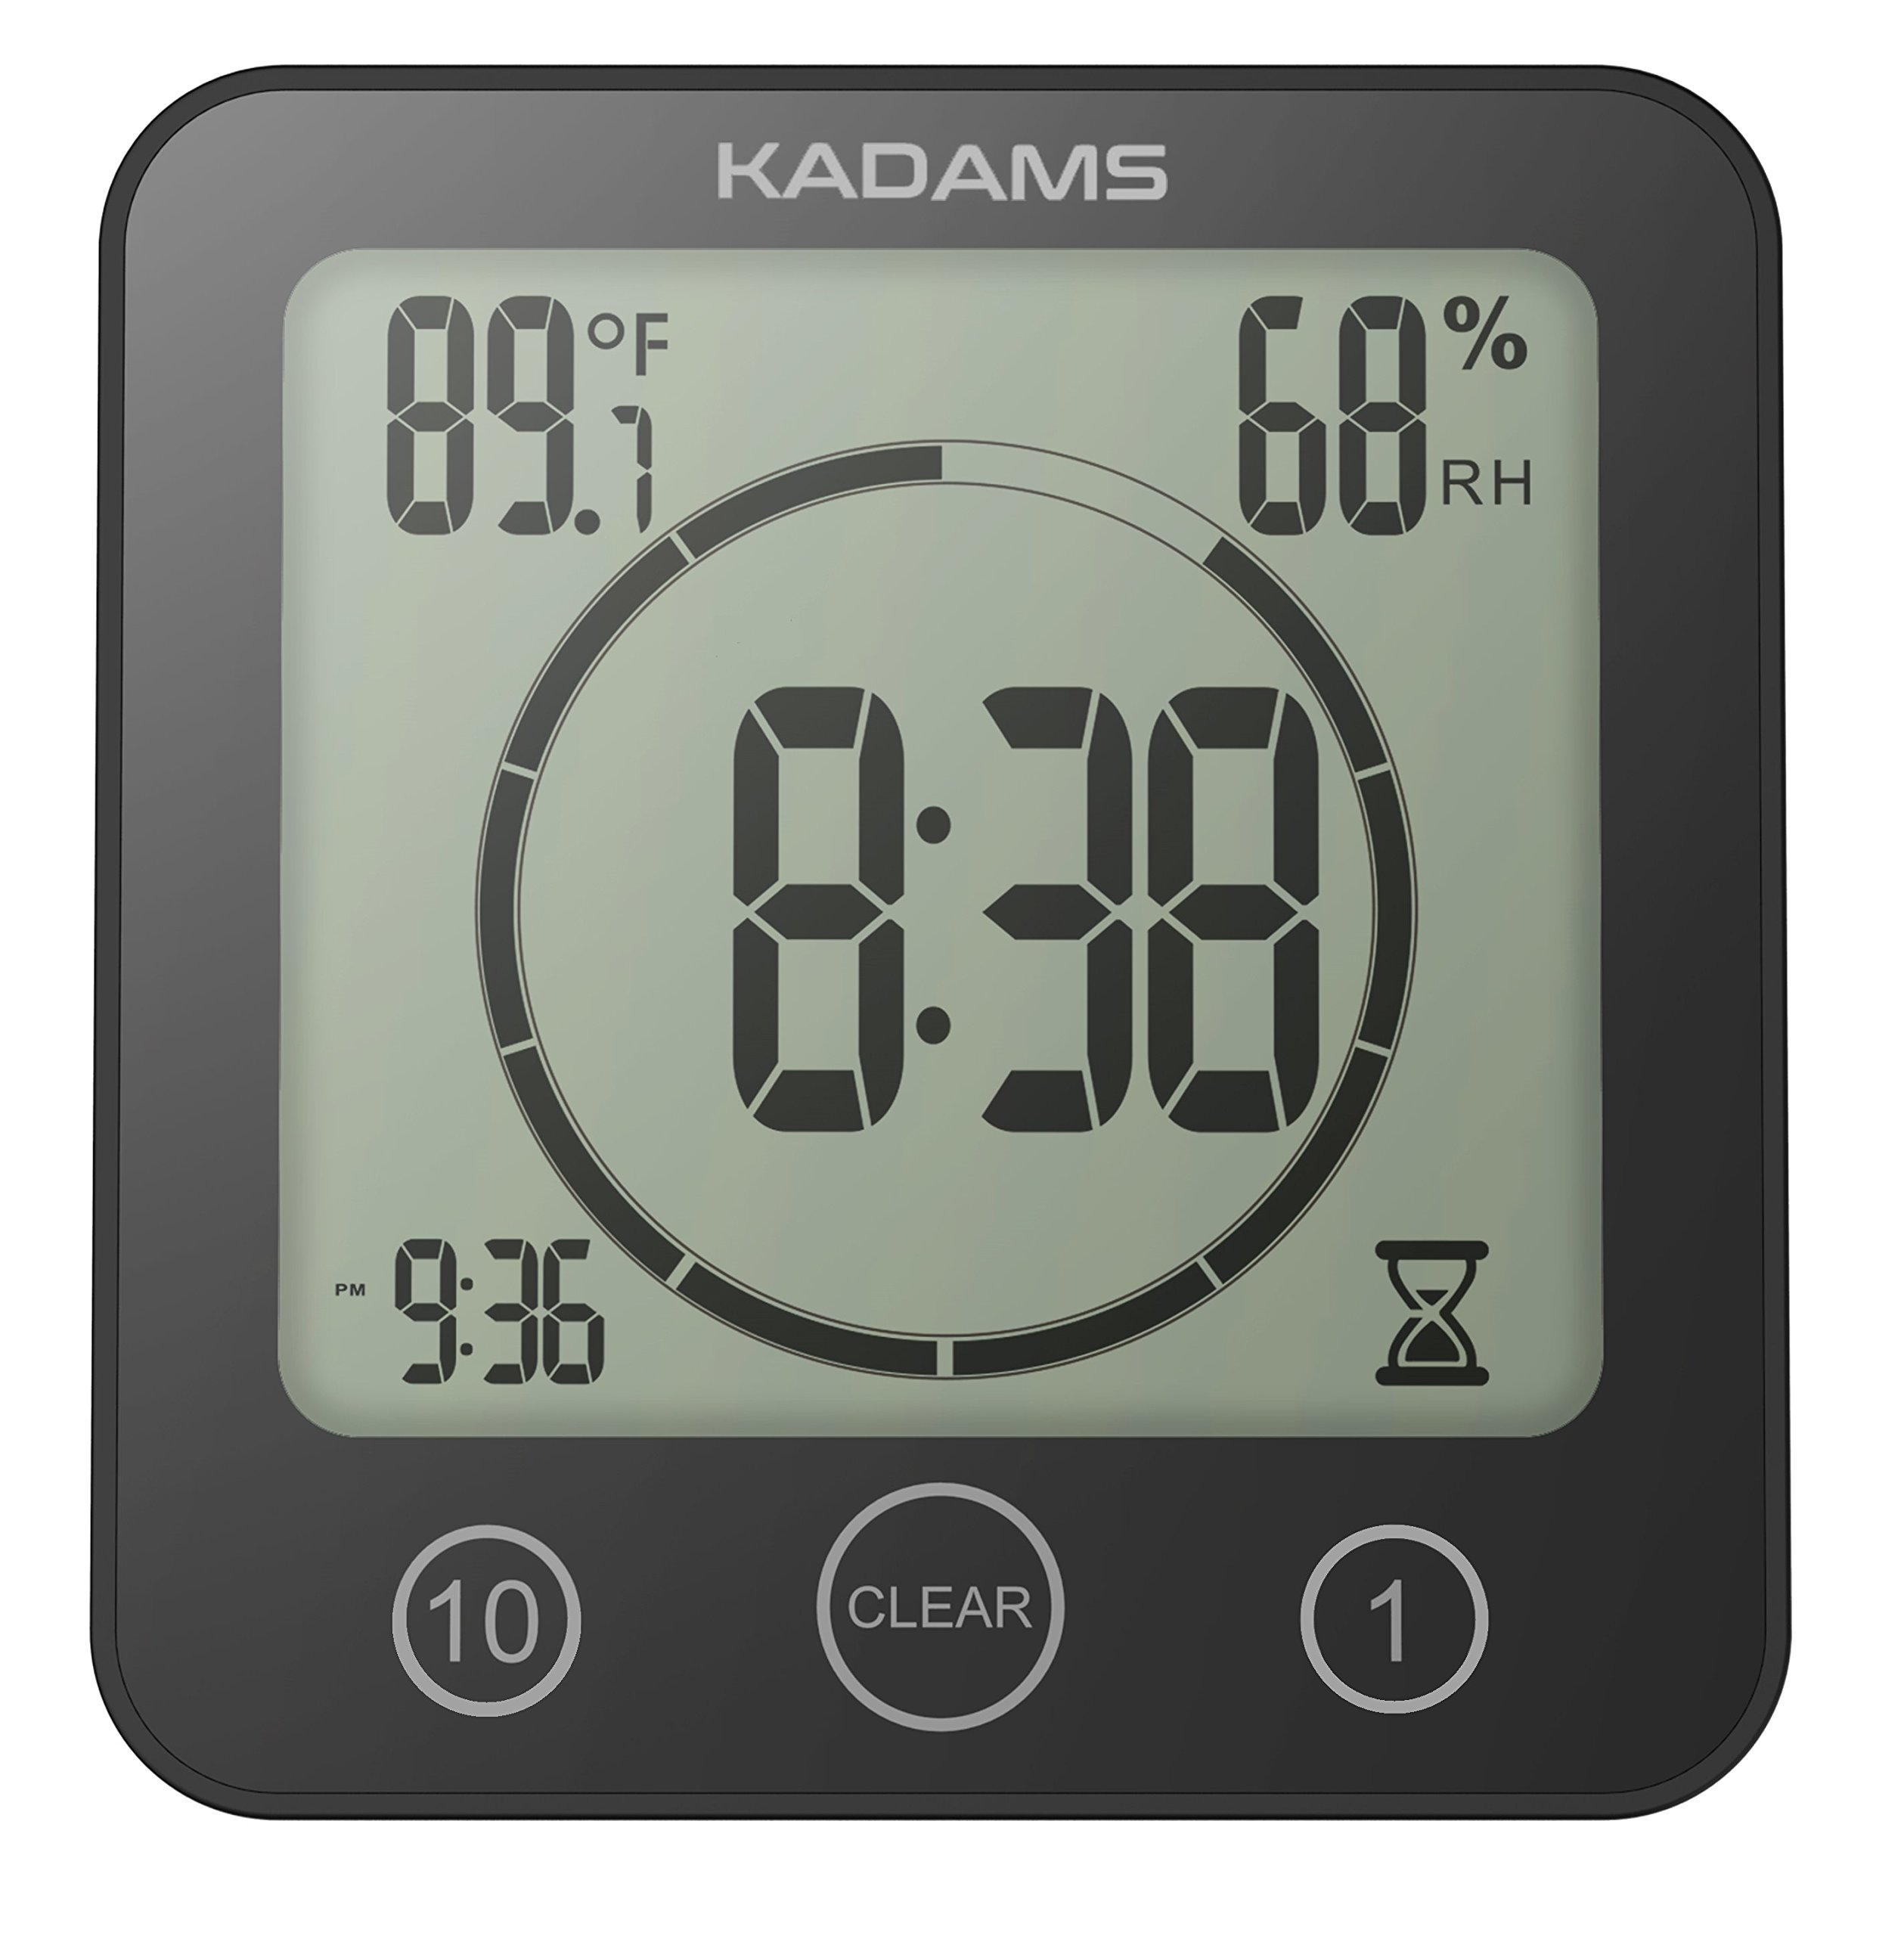 [Newest Version] KADAMS Digital Clock Timer with Alarm, Waterproof for Water Spray for Bathroom Shower Kitchen, Touch Screen Timer, Temperature Humidity Display, Suction Cup Hanging Hole Stand - BLACK by KADAMS